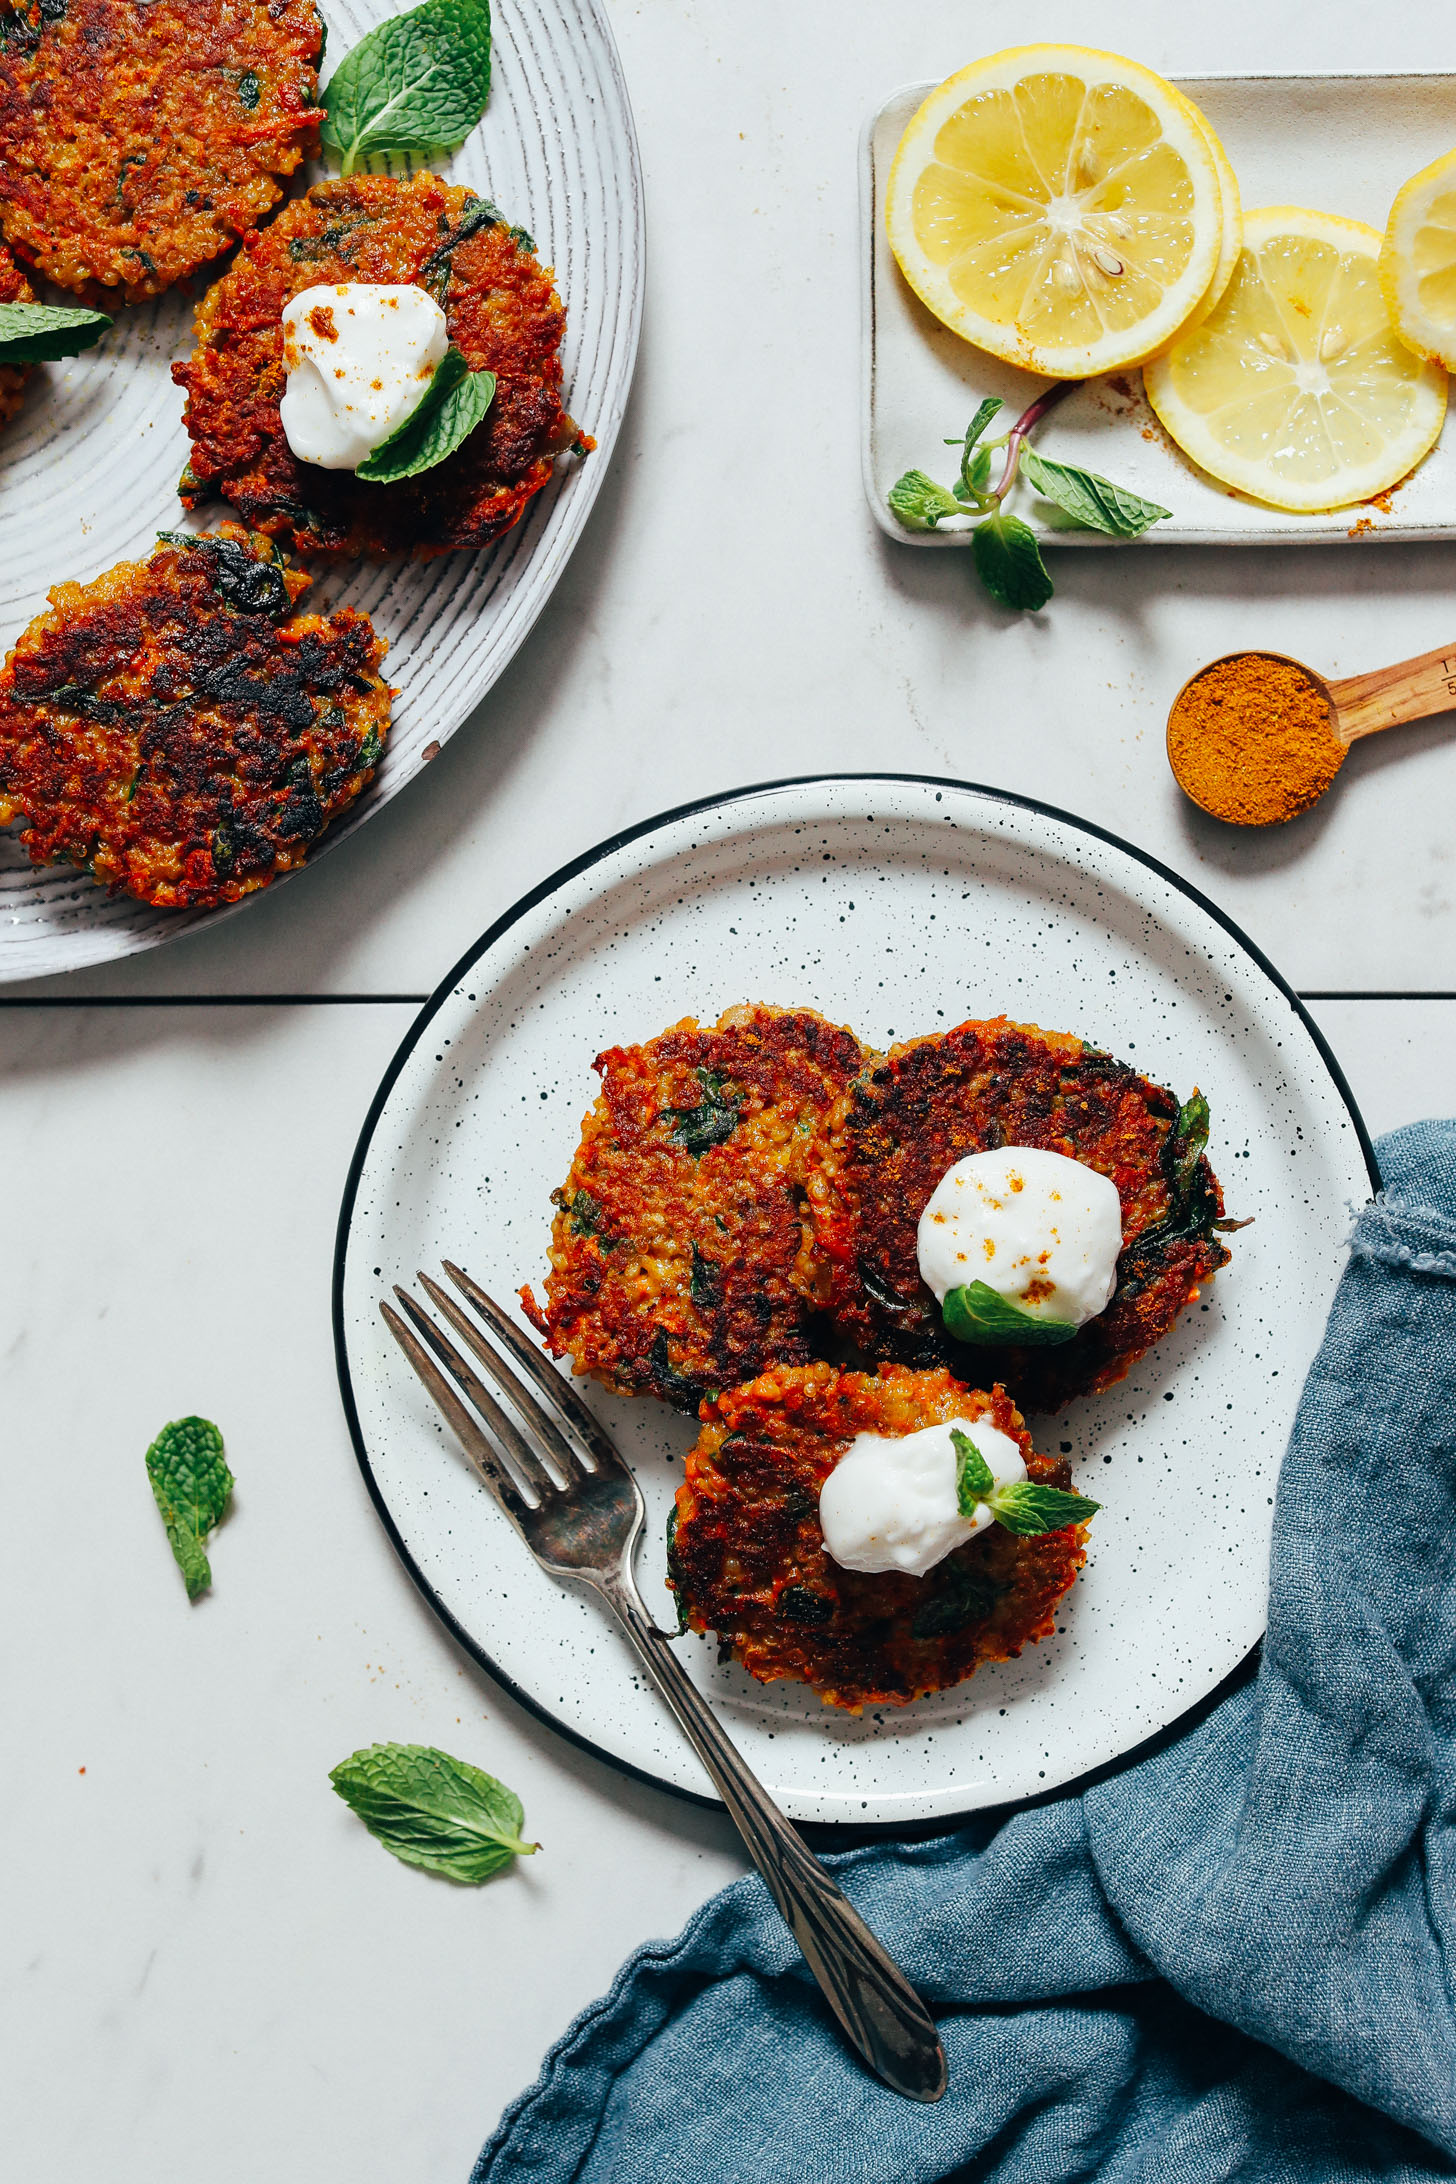 Plate of Quinoa Sweet Potato Fritters topped with dairy-free yogurt and fresh mint